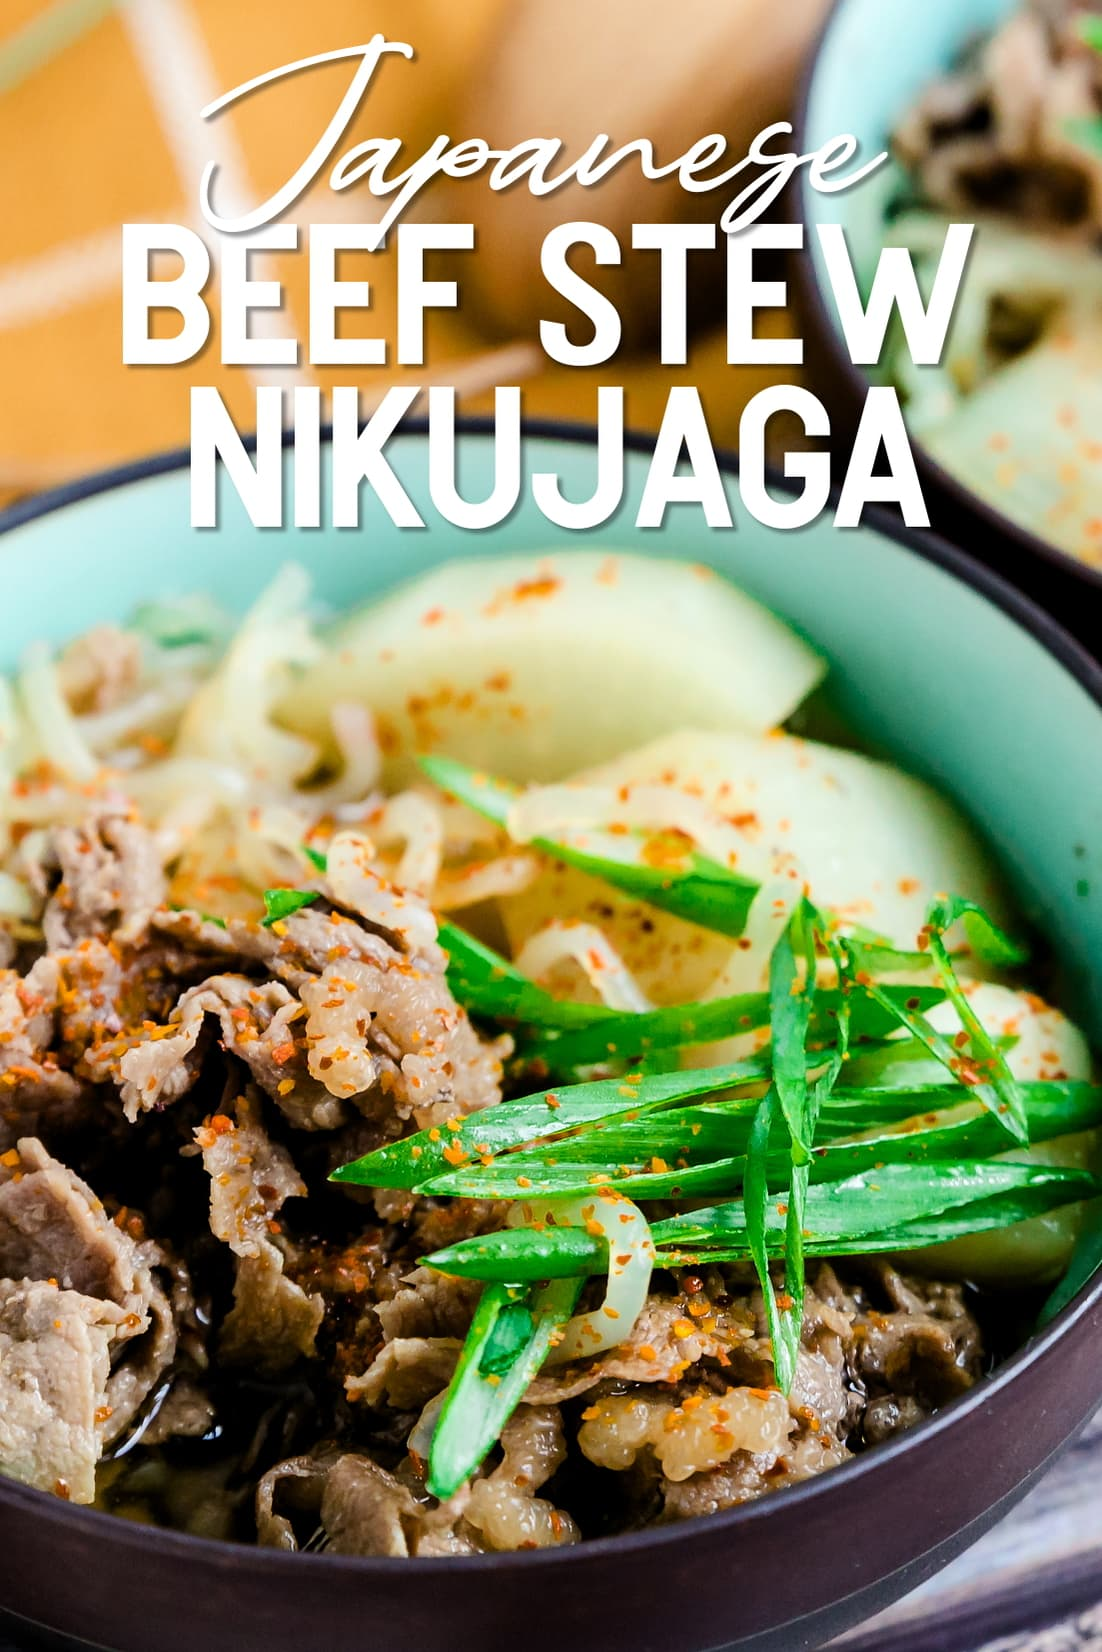 Keto Low Carb Japanese Sliced Beef Stew Nikujaga close up in a bowl